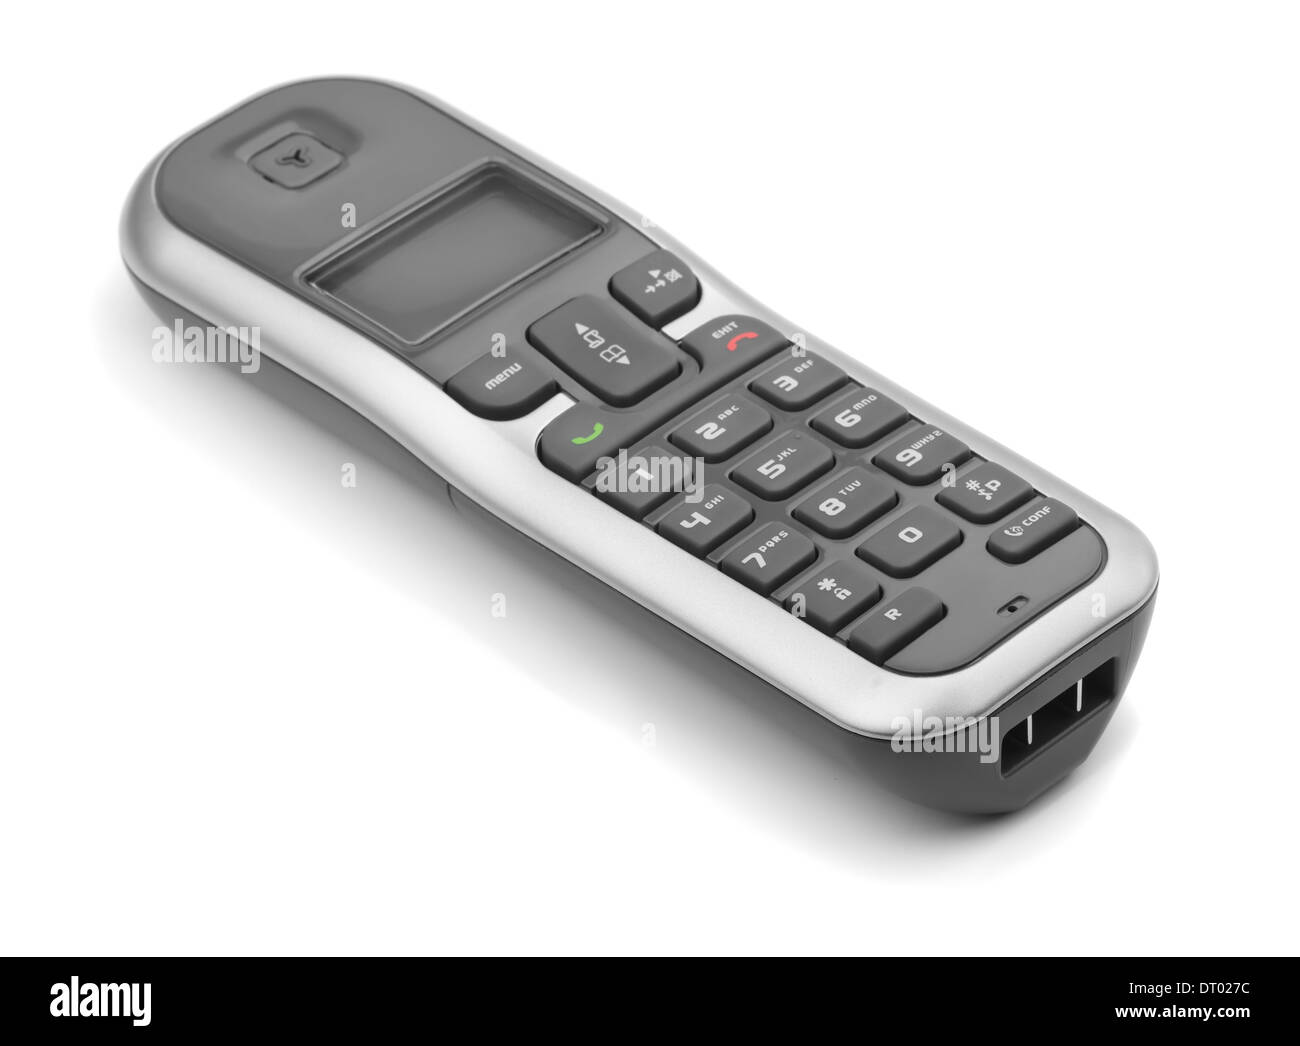 Digital cordless dect phone isolated on white - Stock Image